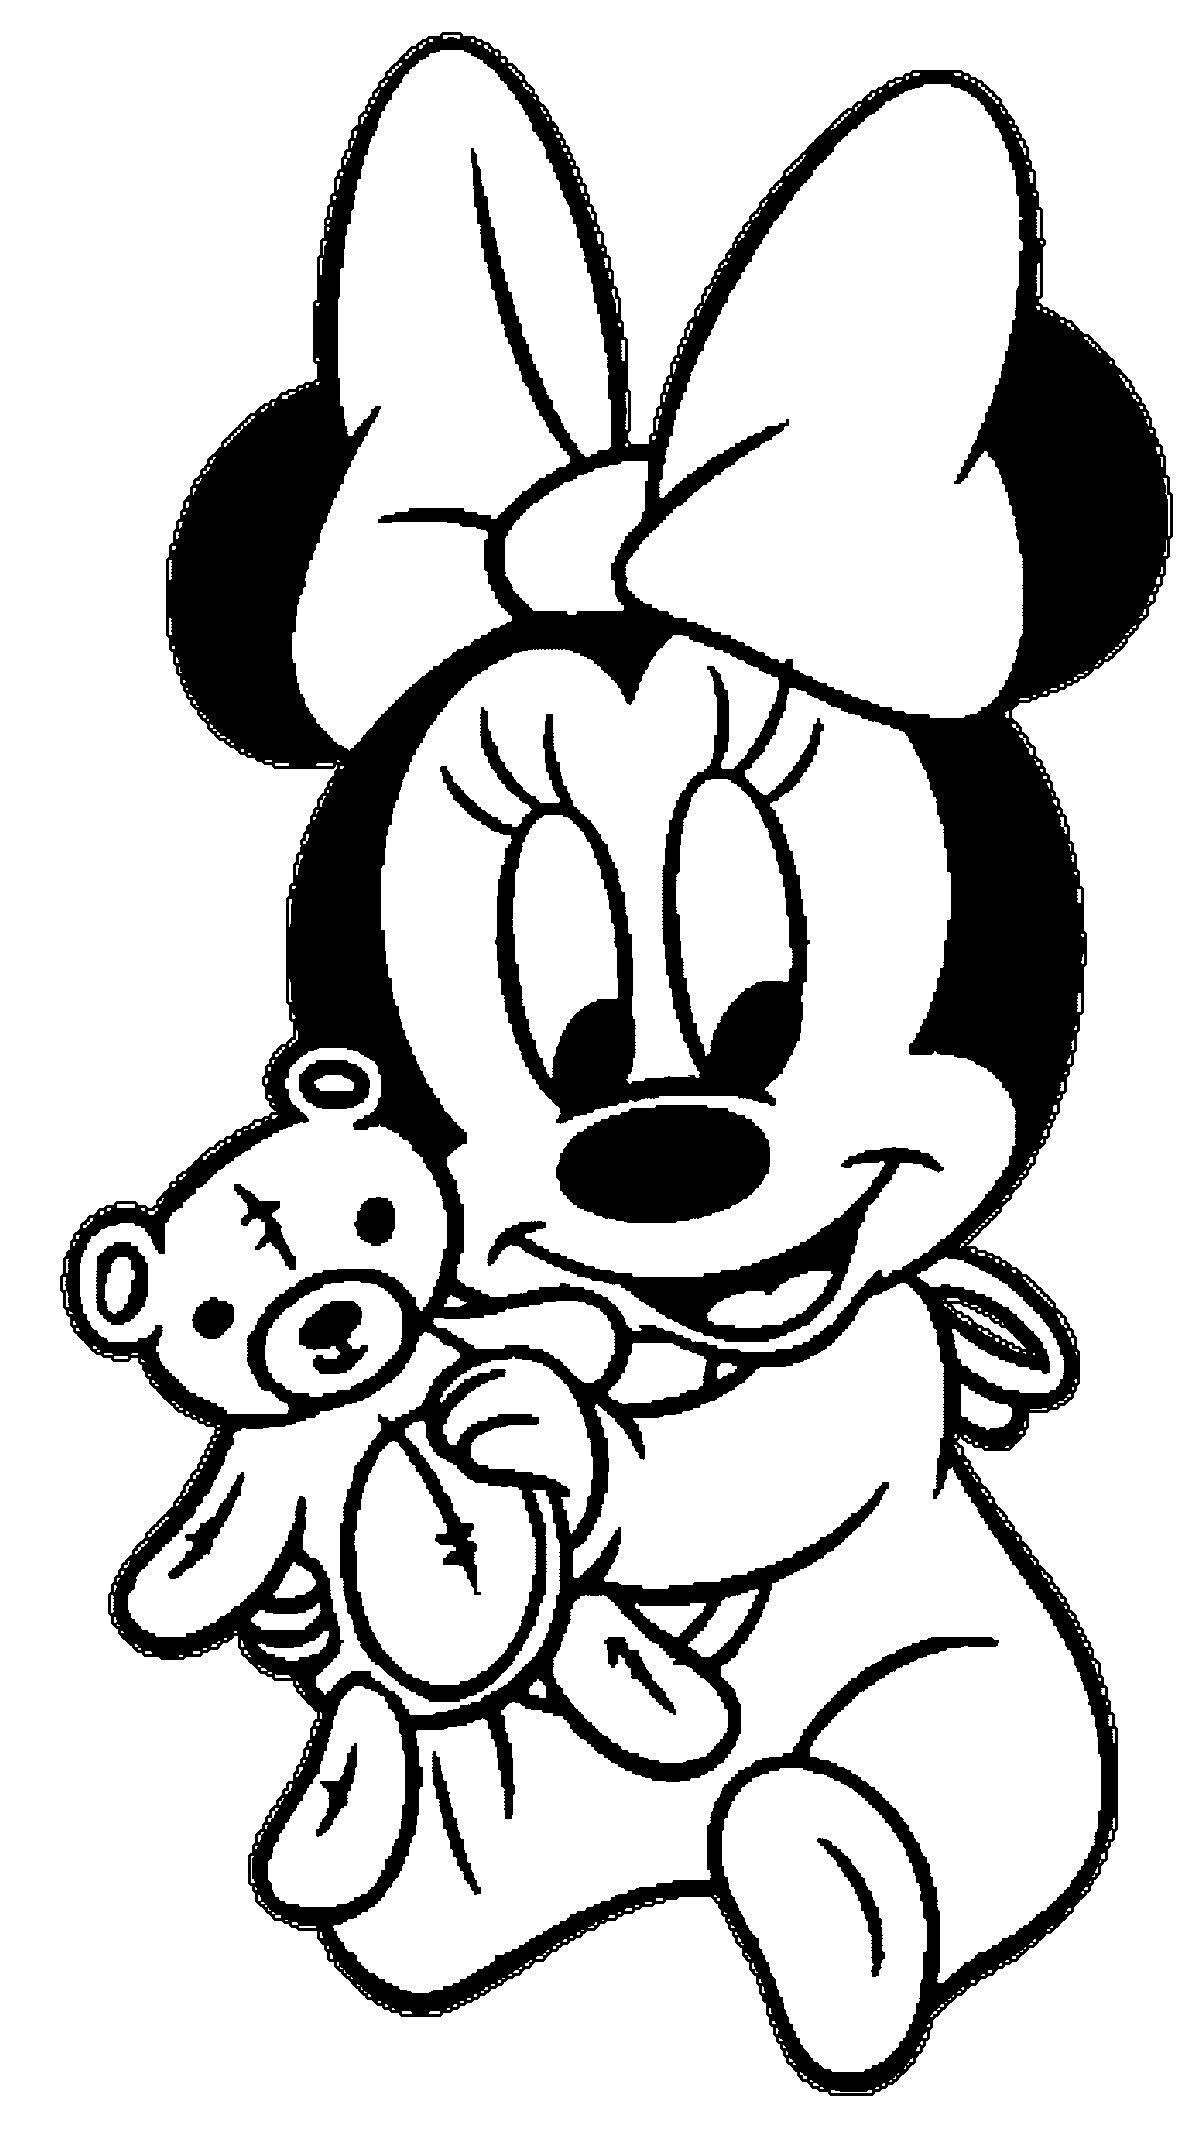 Minnie Baby Coloring Pages 2 By Sean Coloring Baby Minnie Mouse Coloring Pages Mickey Mouse Coloring Pages Bear Coloring Pages